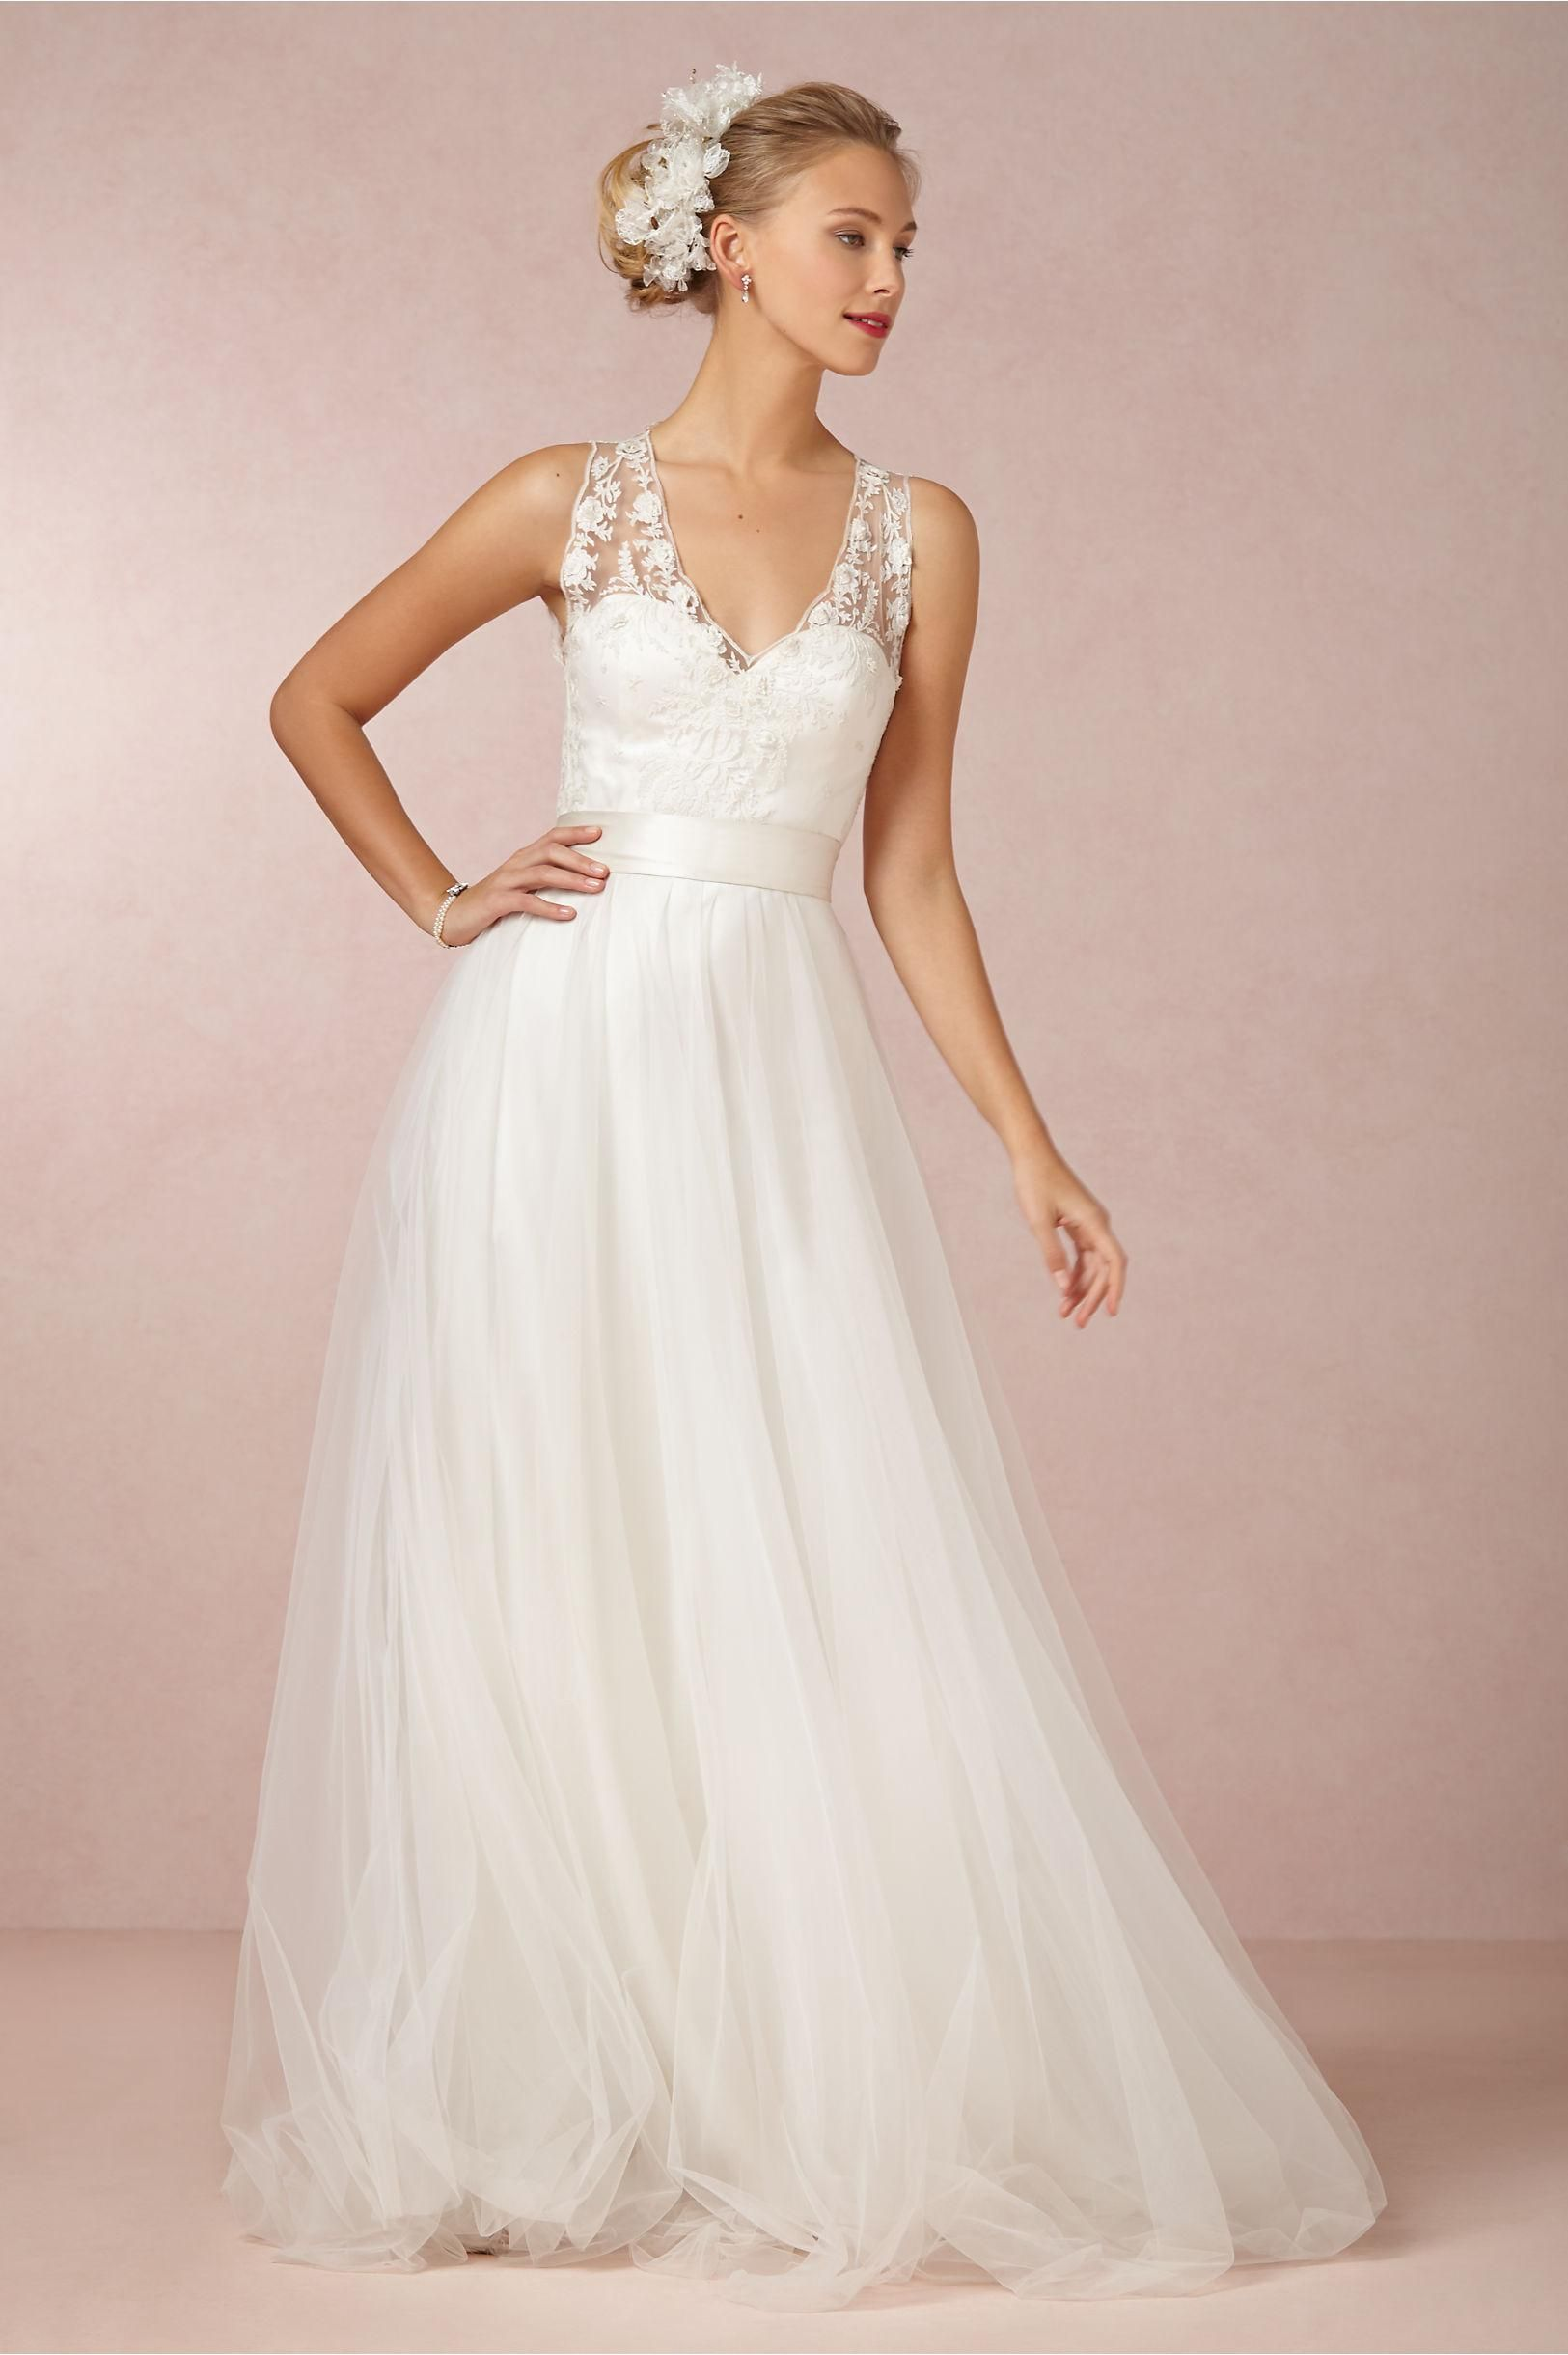 Onyx gown in white from bhldn wedding ideas pinterest gowns